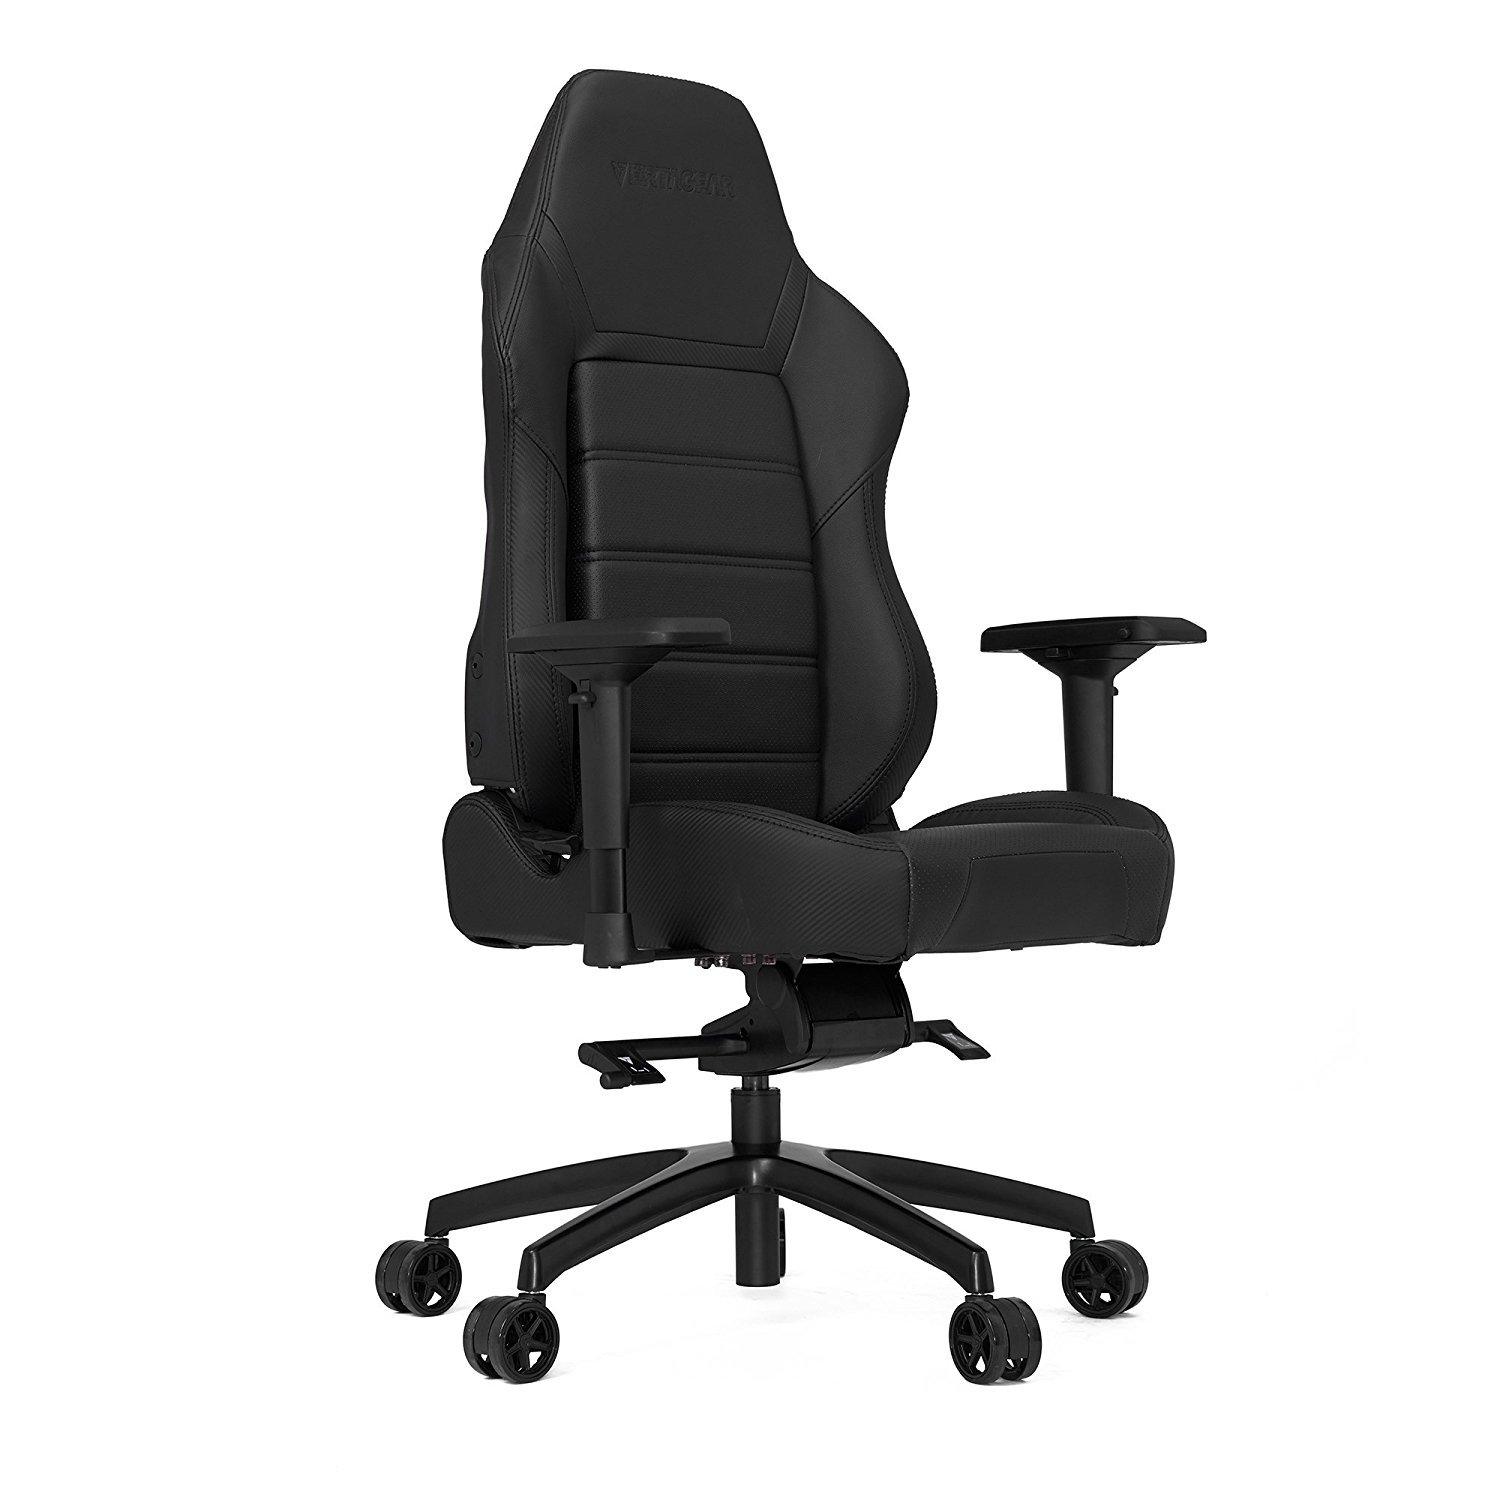 Vertagear Racing Series S-Line PL6000 Gaming Chair - Black/Carbon for PC image